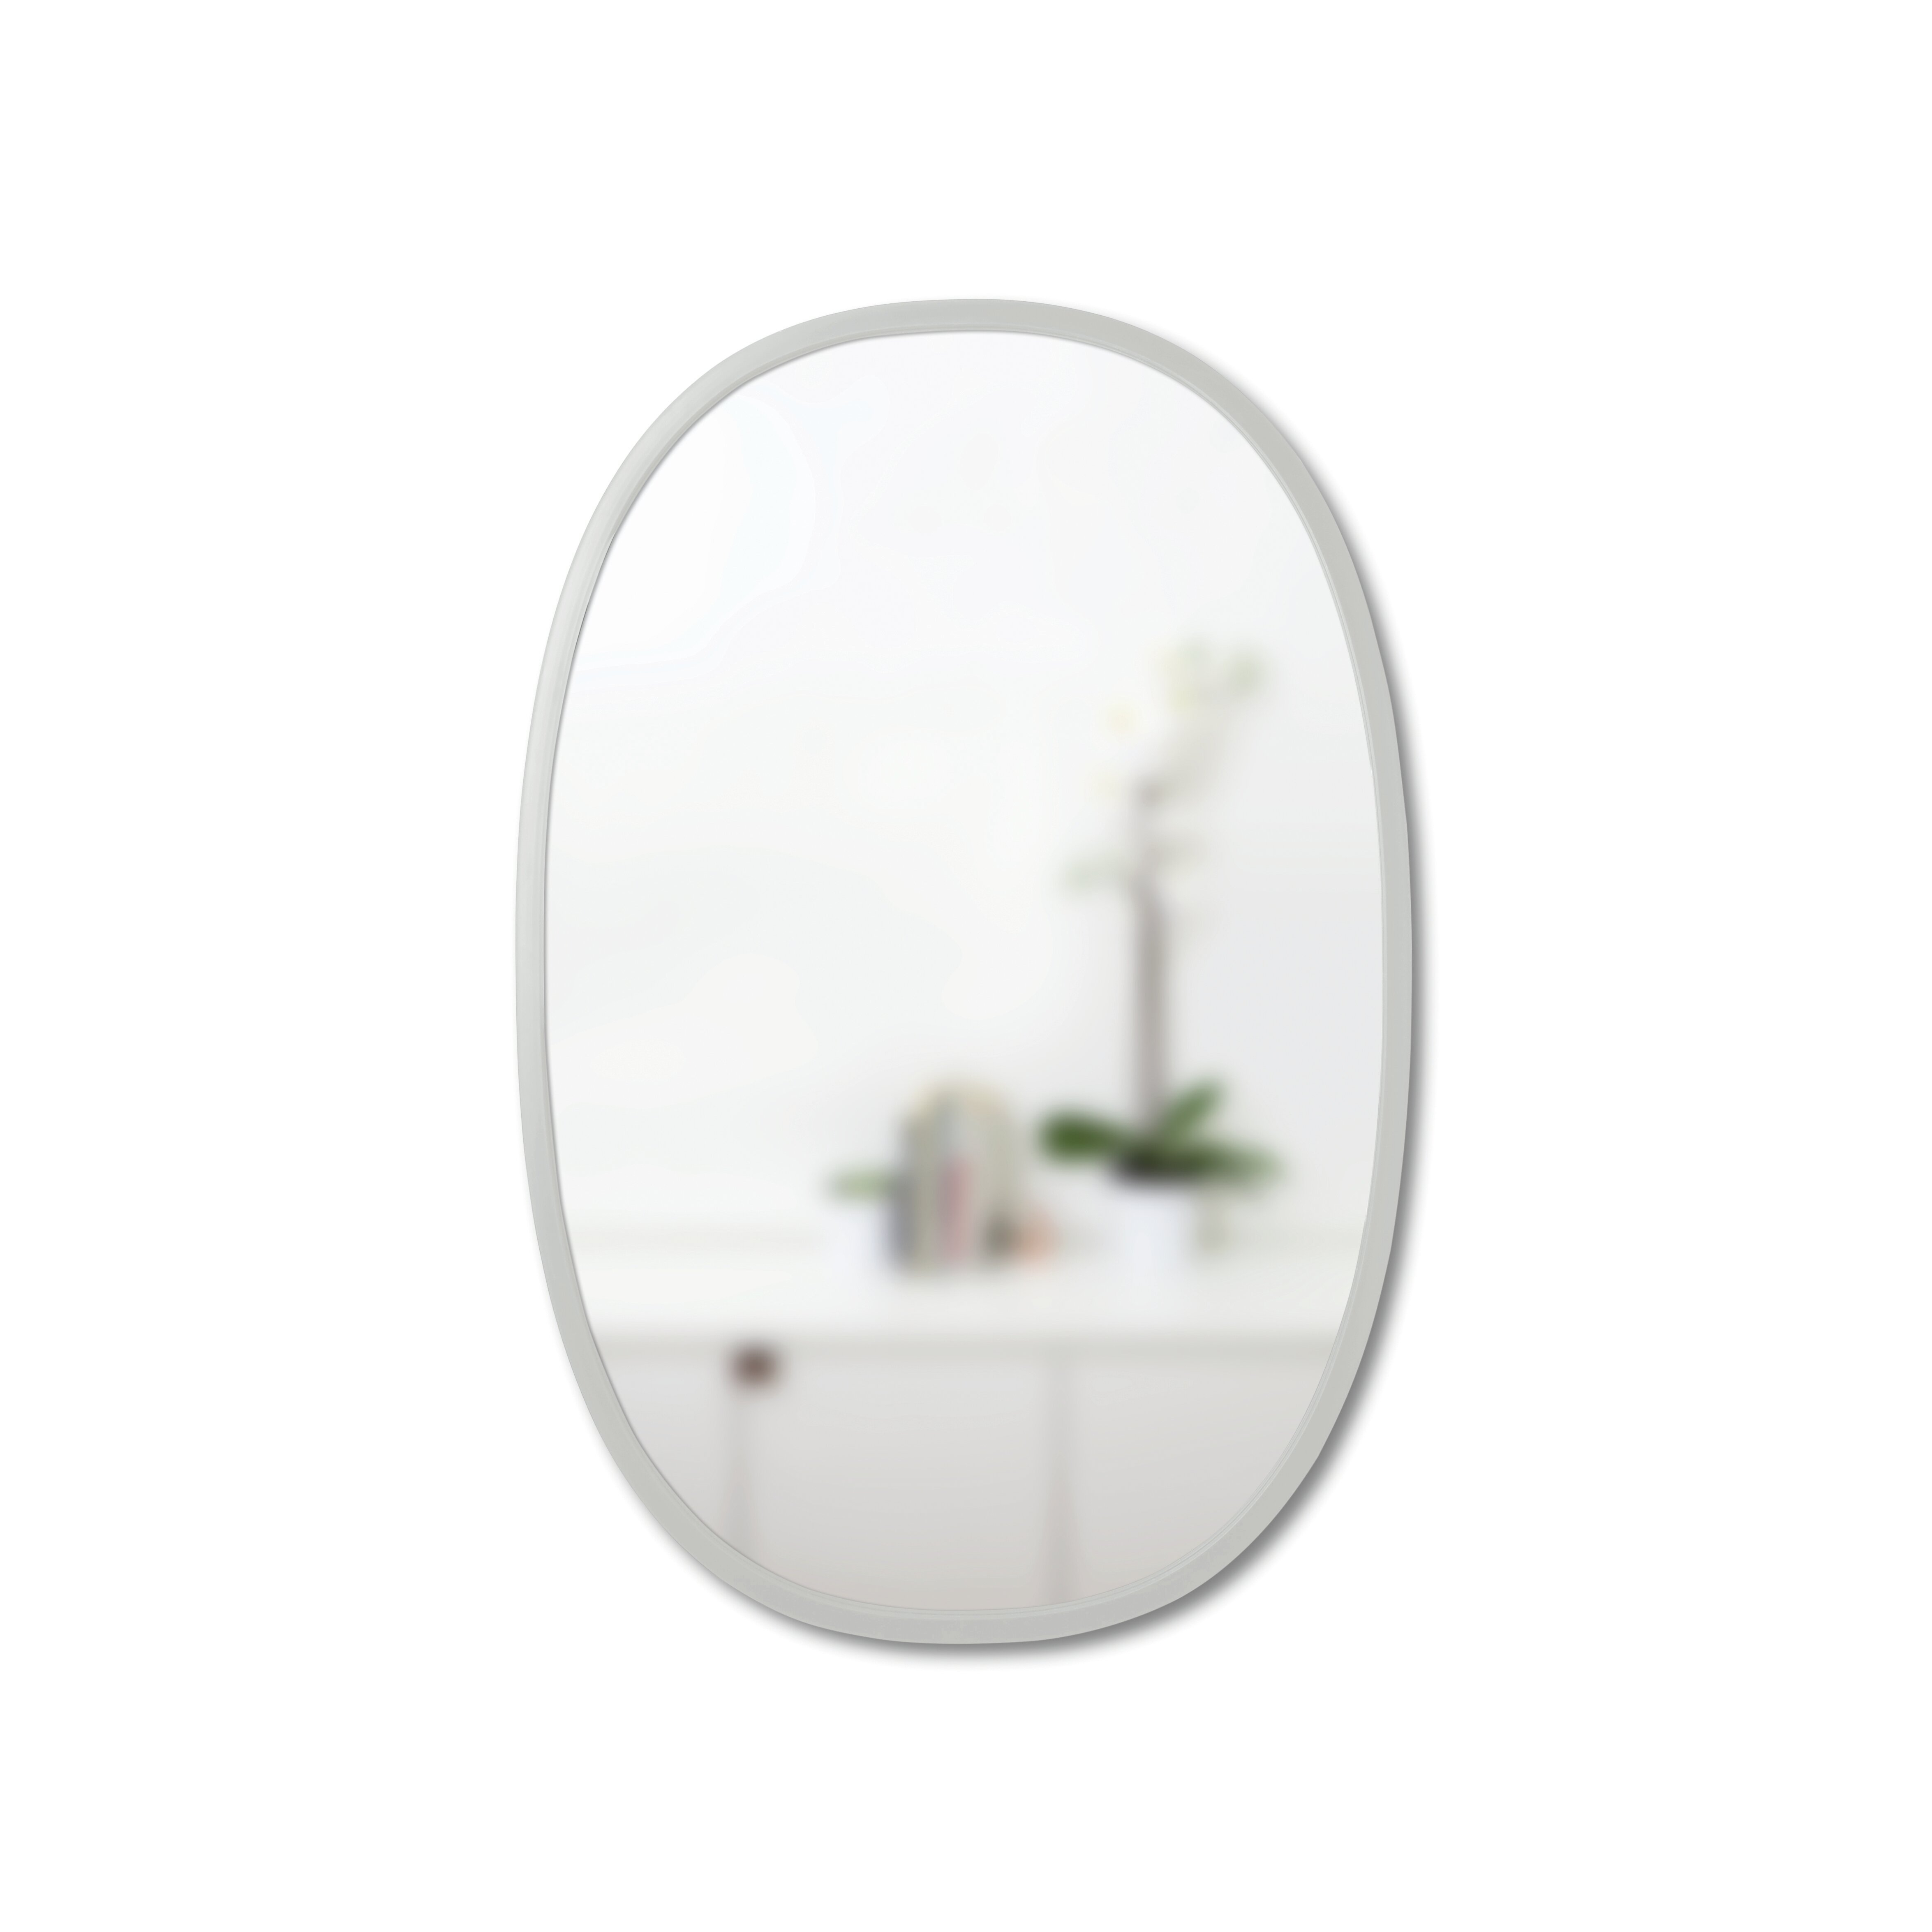 Hub Modern & Contemporary Accent Mirror Pertaining To Hub Modern And Contemporary Accent Mirrors (Image 2 of 20)